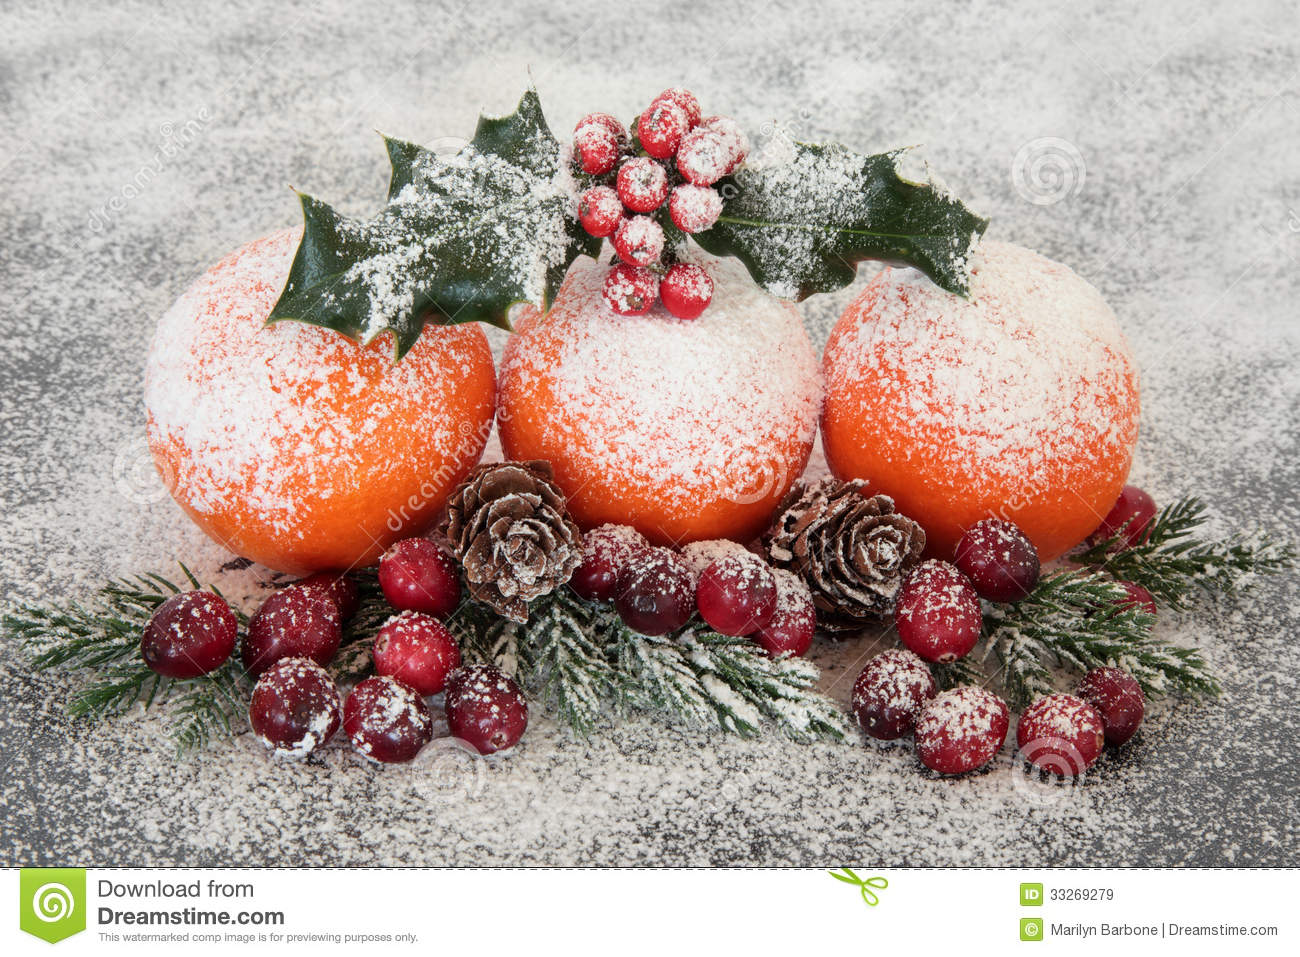 Superior Christmas Fruit Decorations Part - 12: Christmas Fruit Display Royalty Free Stock Images